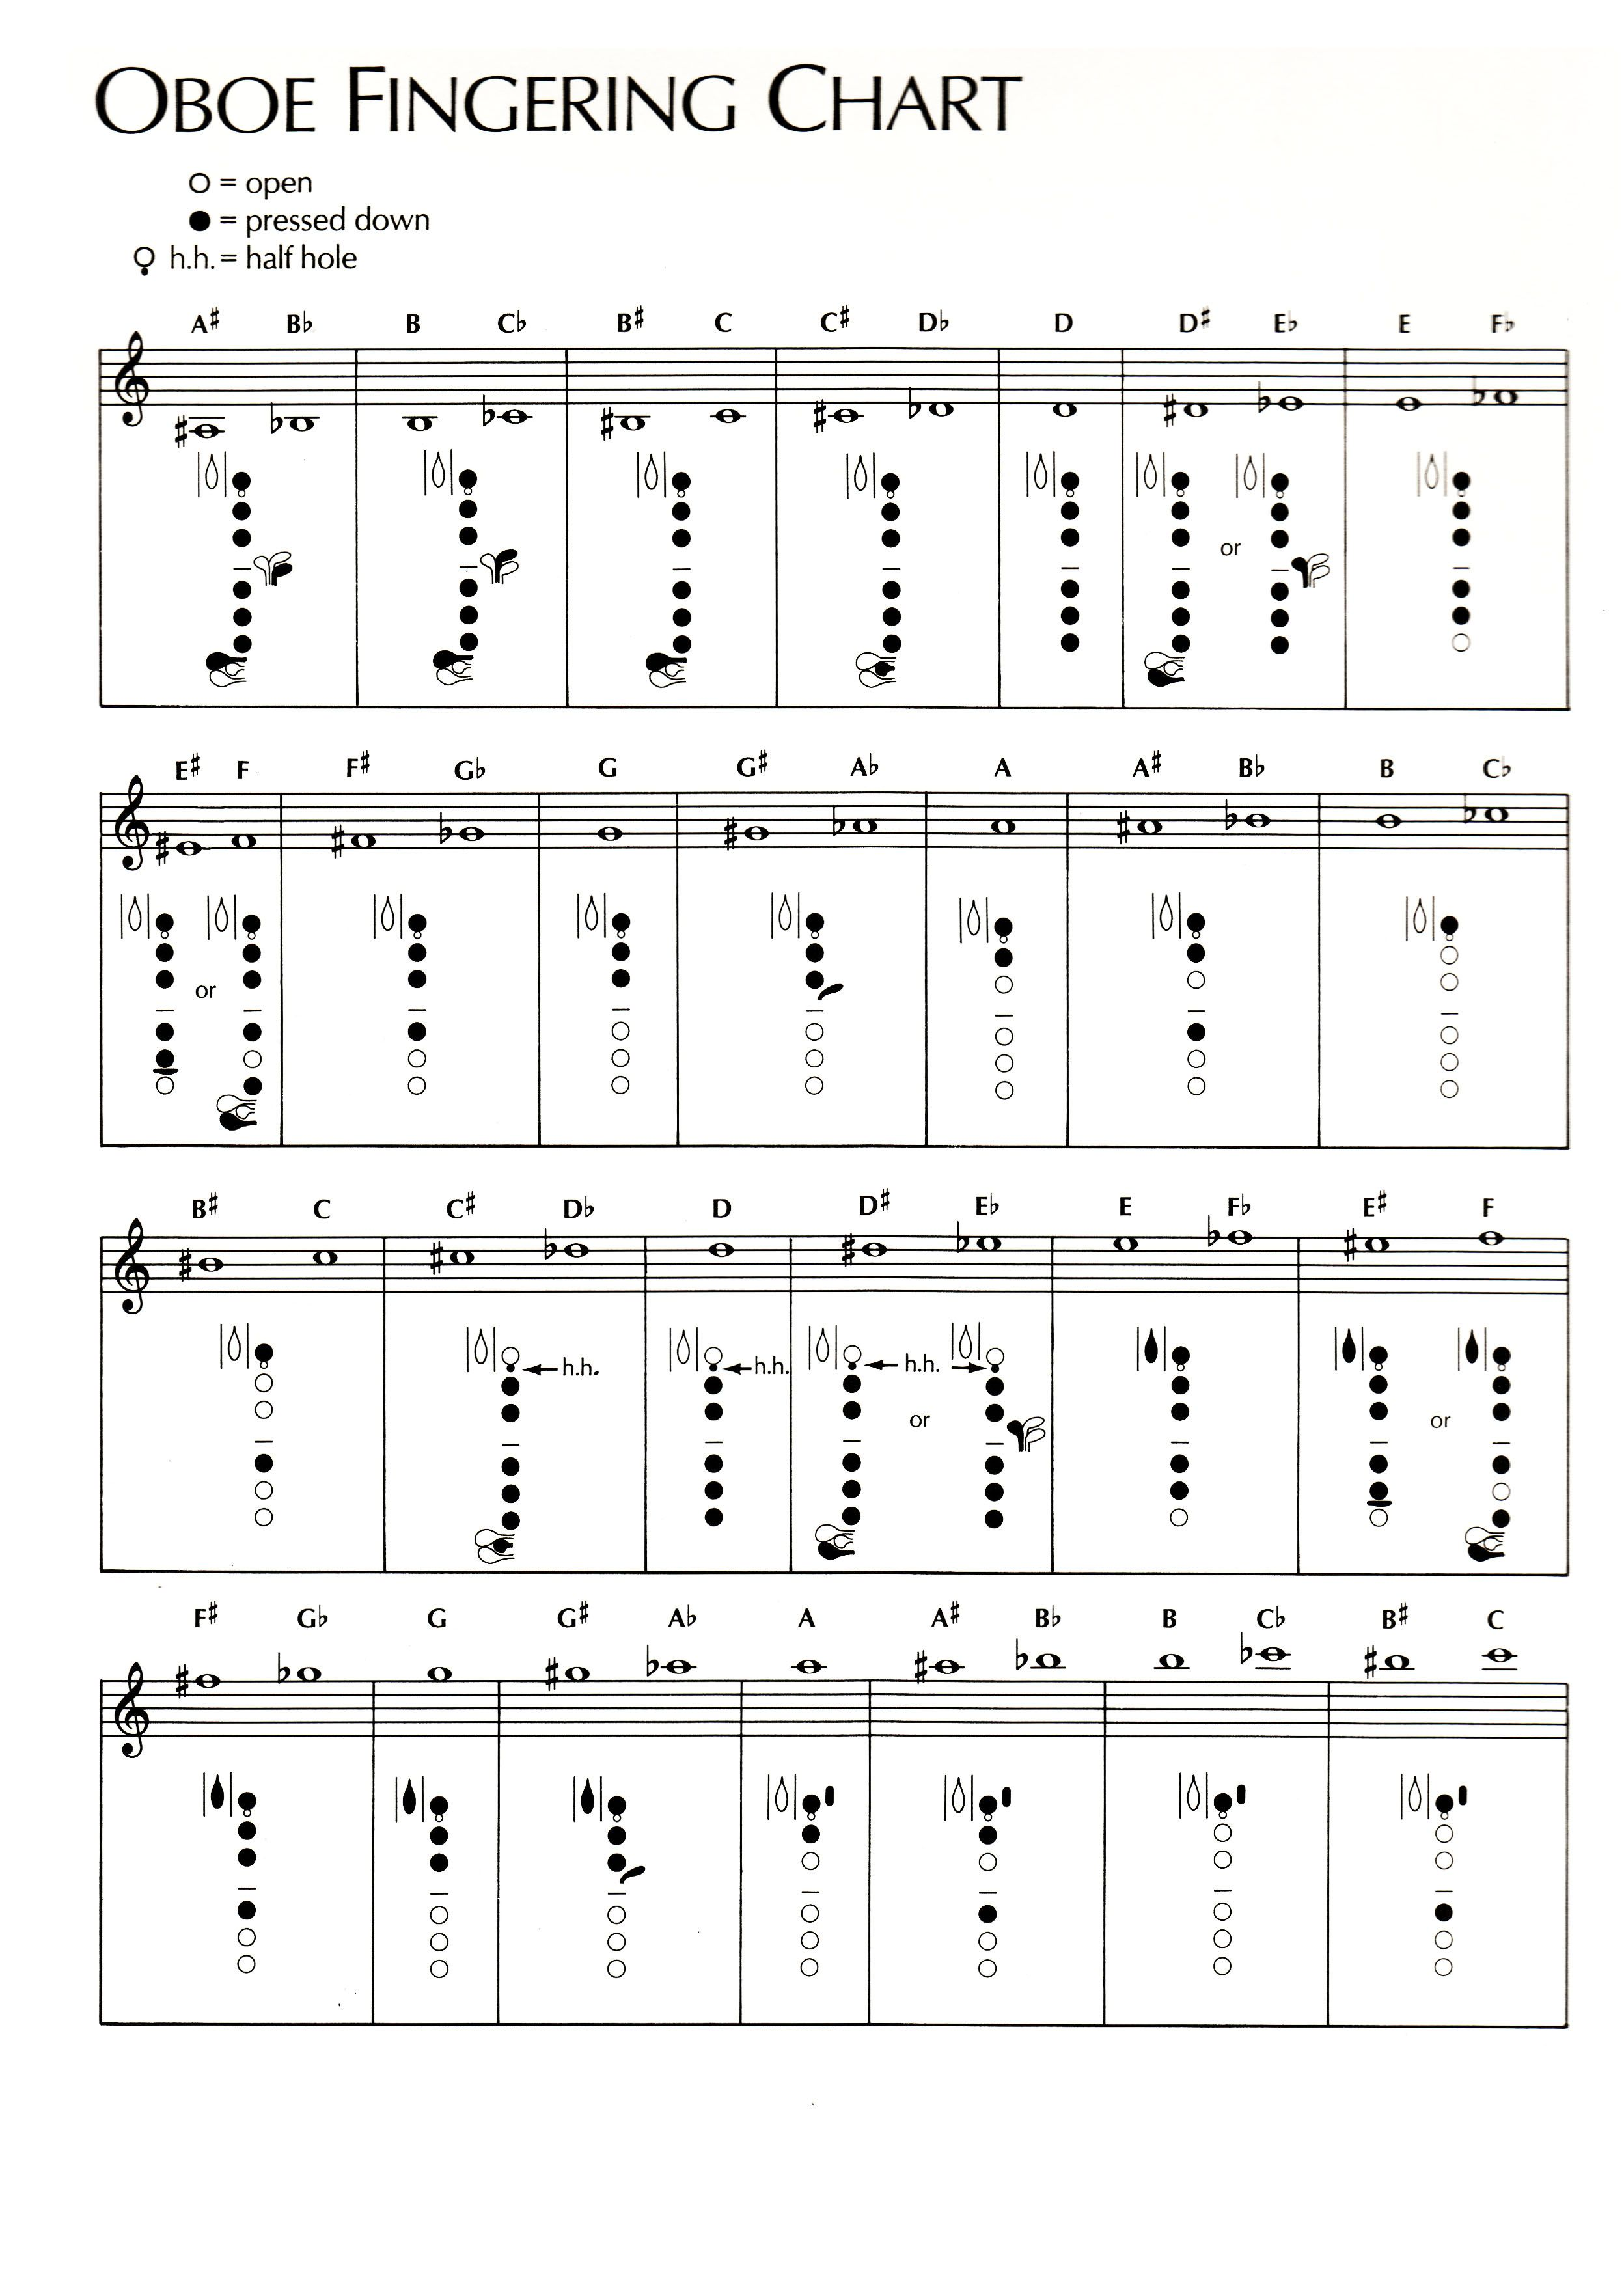 A fingering chart for an oboe.